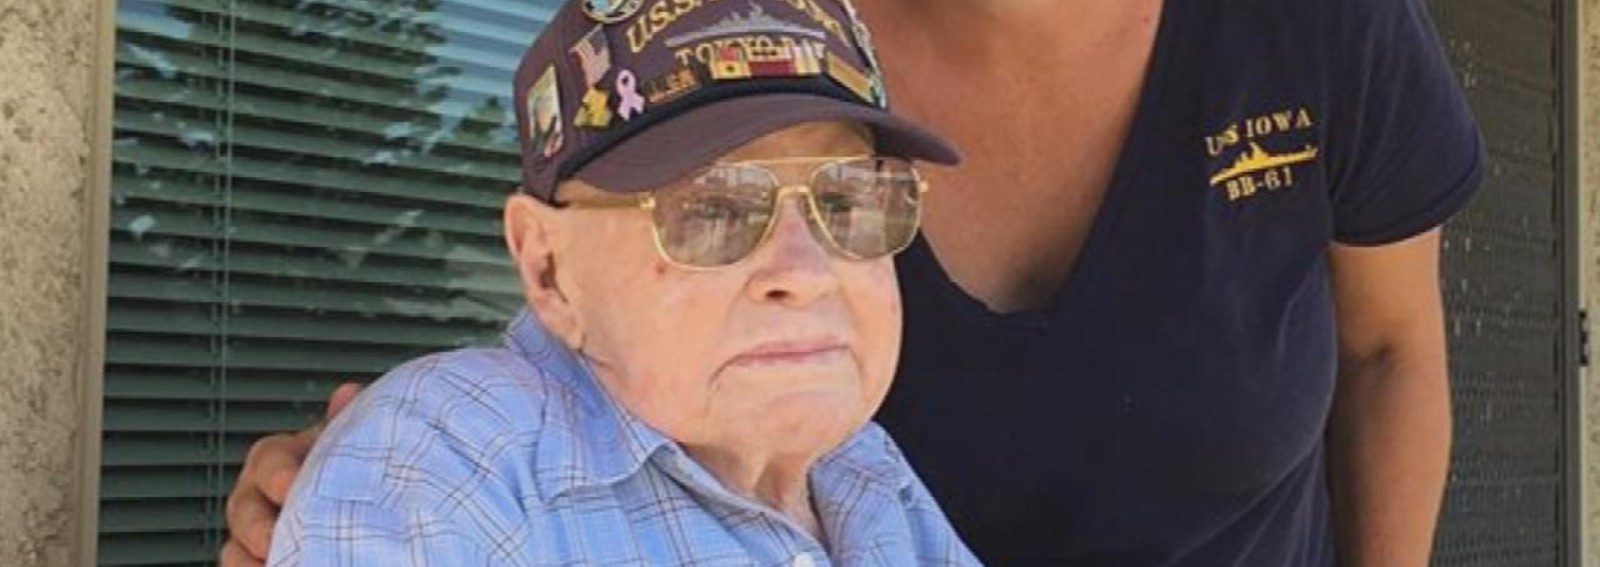 Navy sailors' special surprise for 98-year-old WWII vet brings him to tears